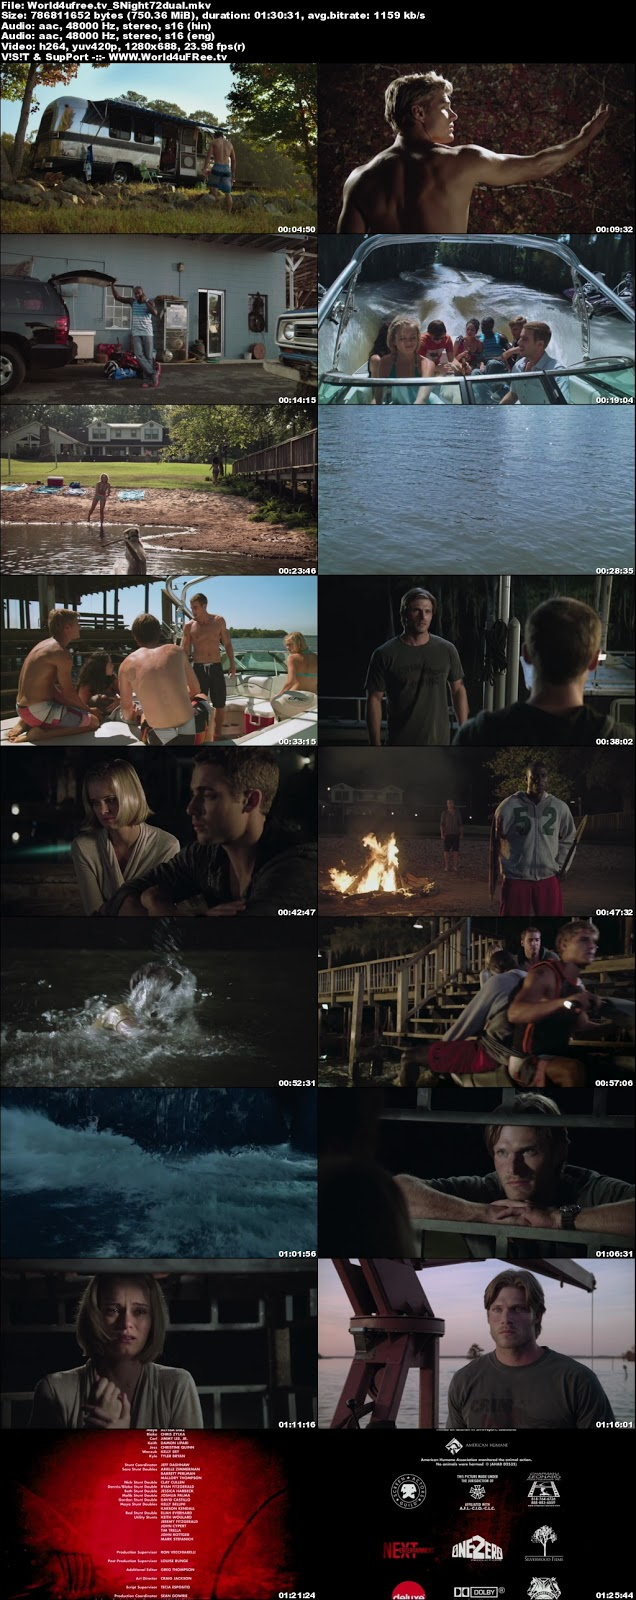 Shark Night 2011 Dual Audio 720p BRRip 700Mb x264 world4ufree.tv, hollywood movie Shark Night 2011 hindi dubbed dual audio hindi english languages original audio 720p BRRip hdrip free download 700mb or watch online at world4ufree.tv